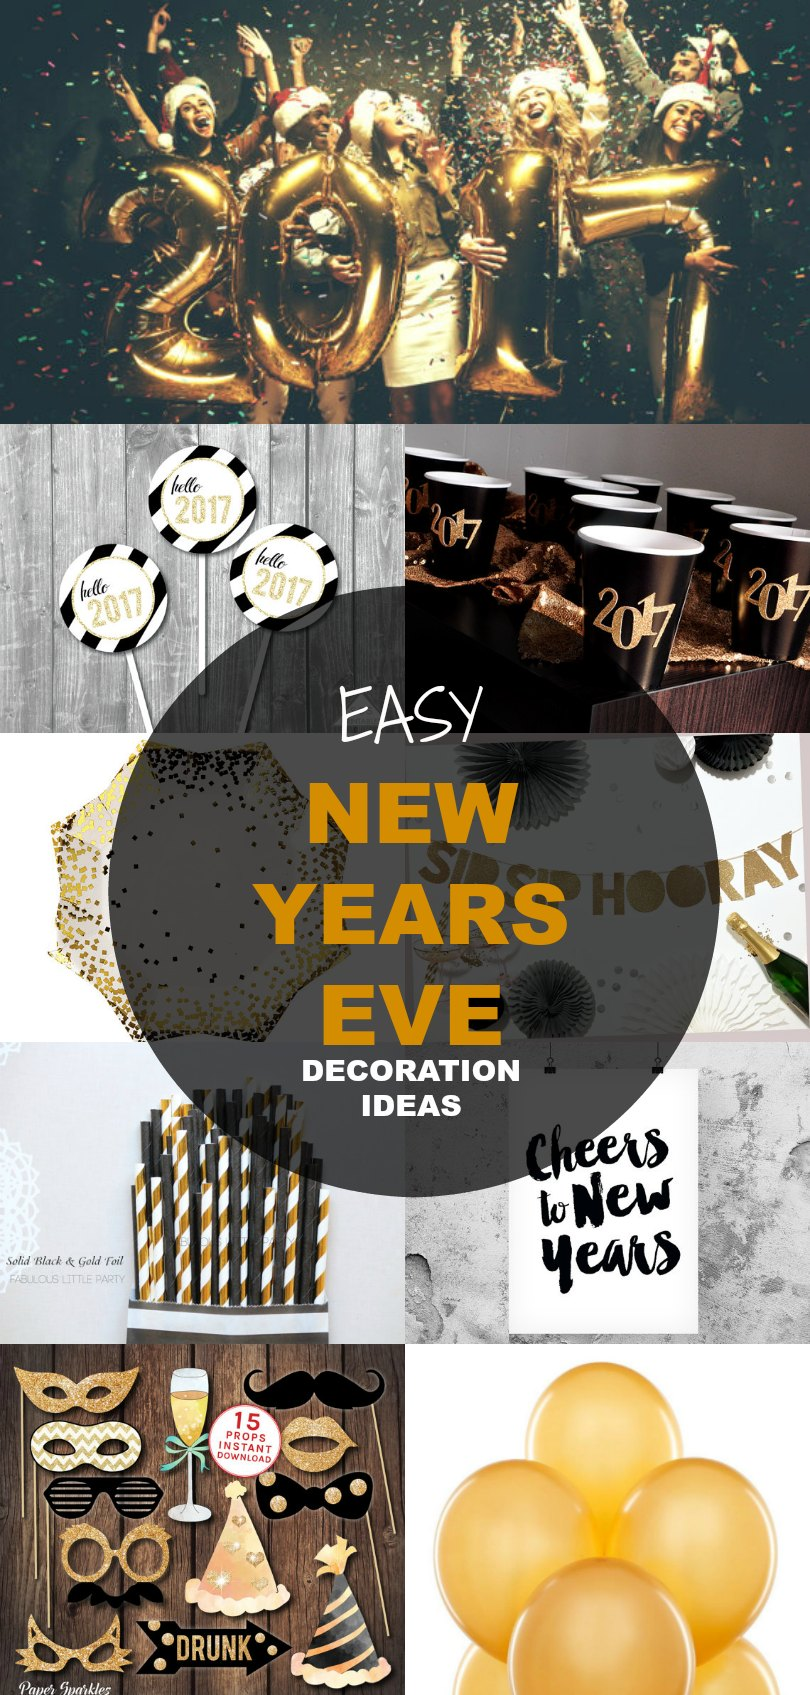 21 New Years Eve Decoration Ideas | On the Cutting Floor ...